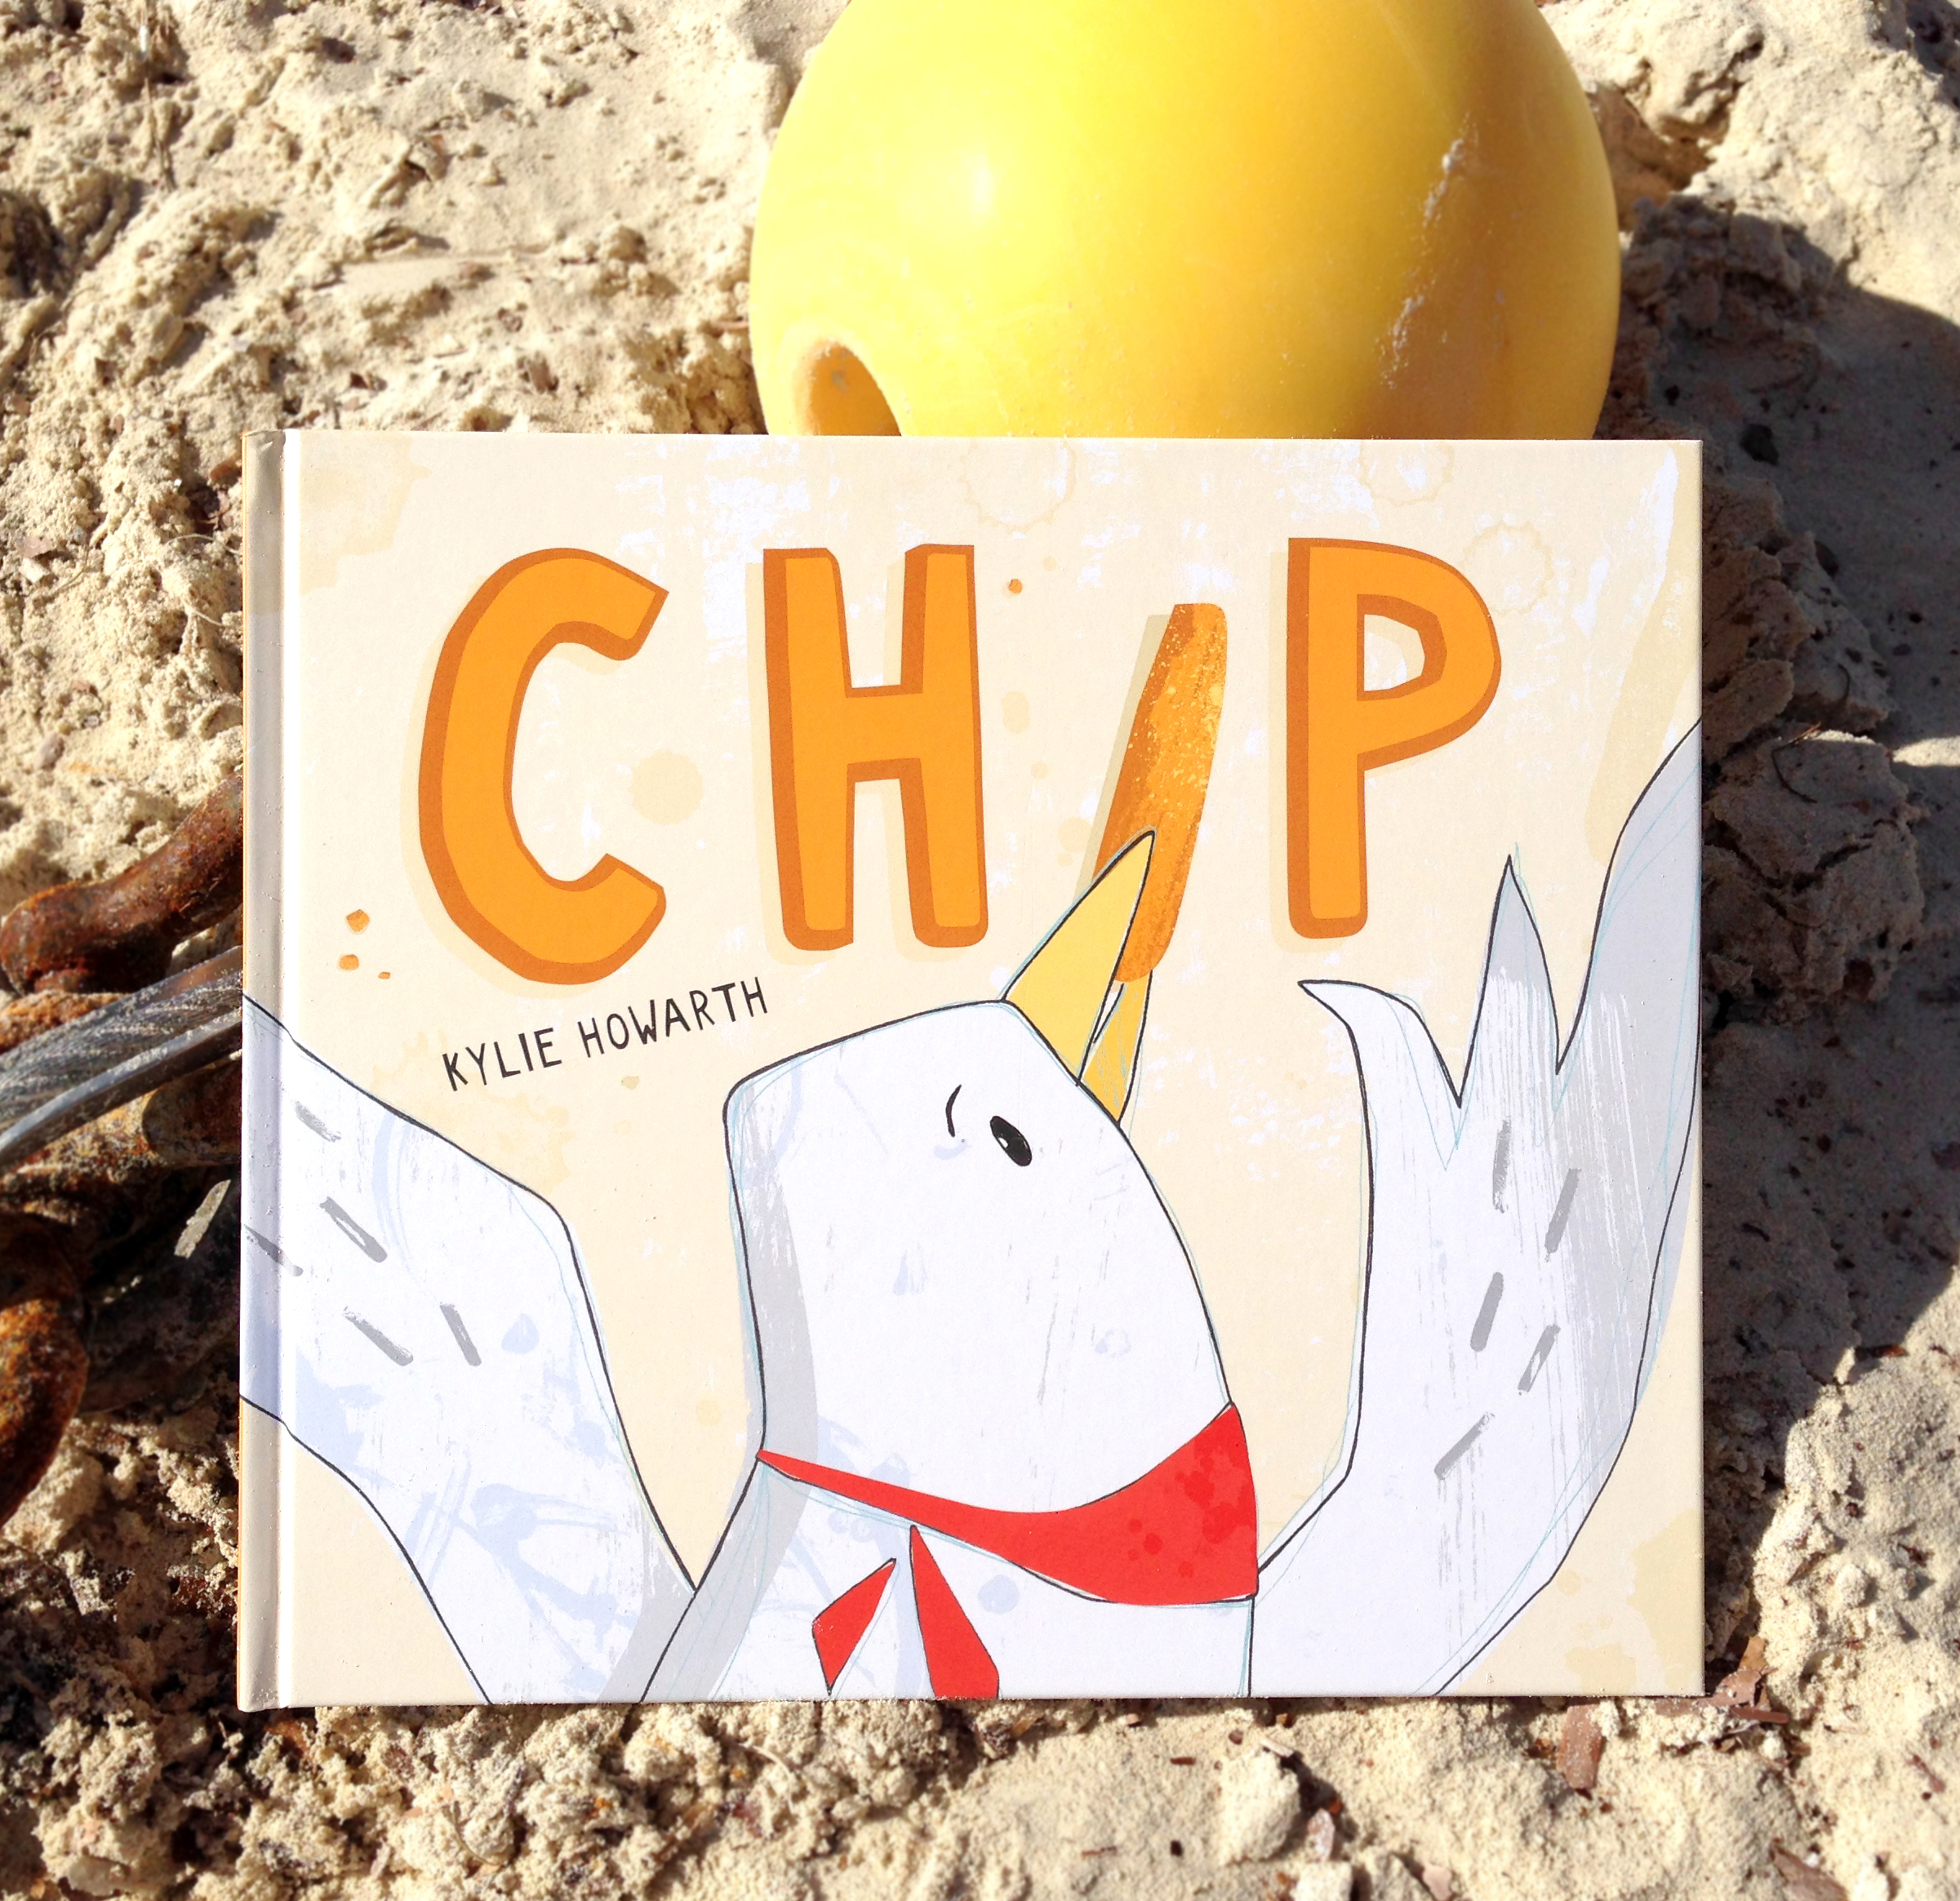 Chip - Picture Book by Kylie Howarth